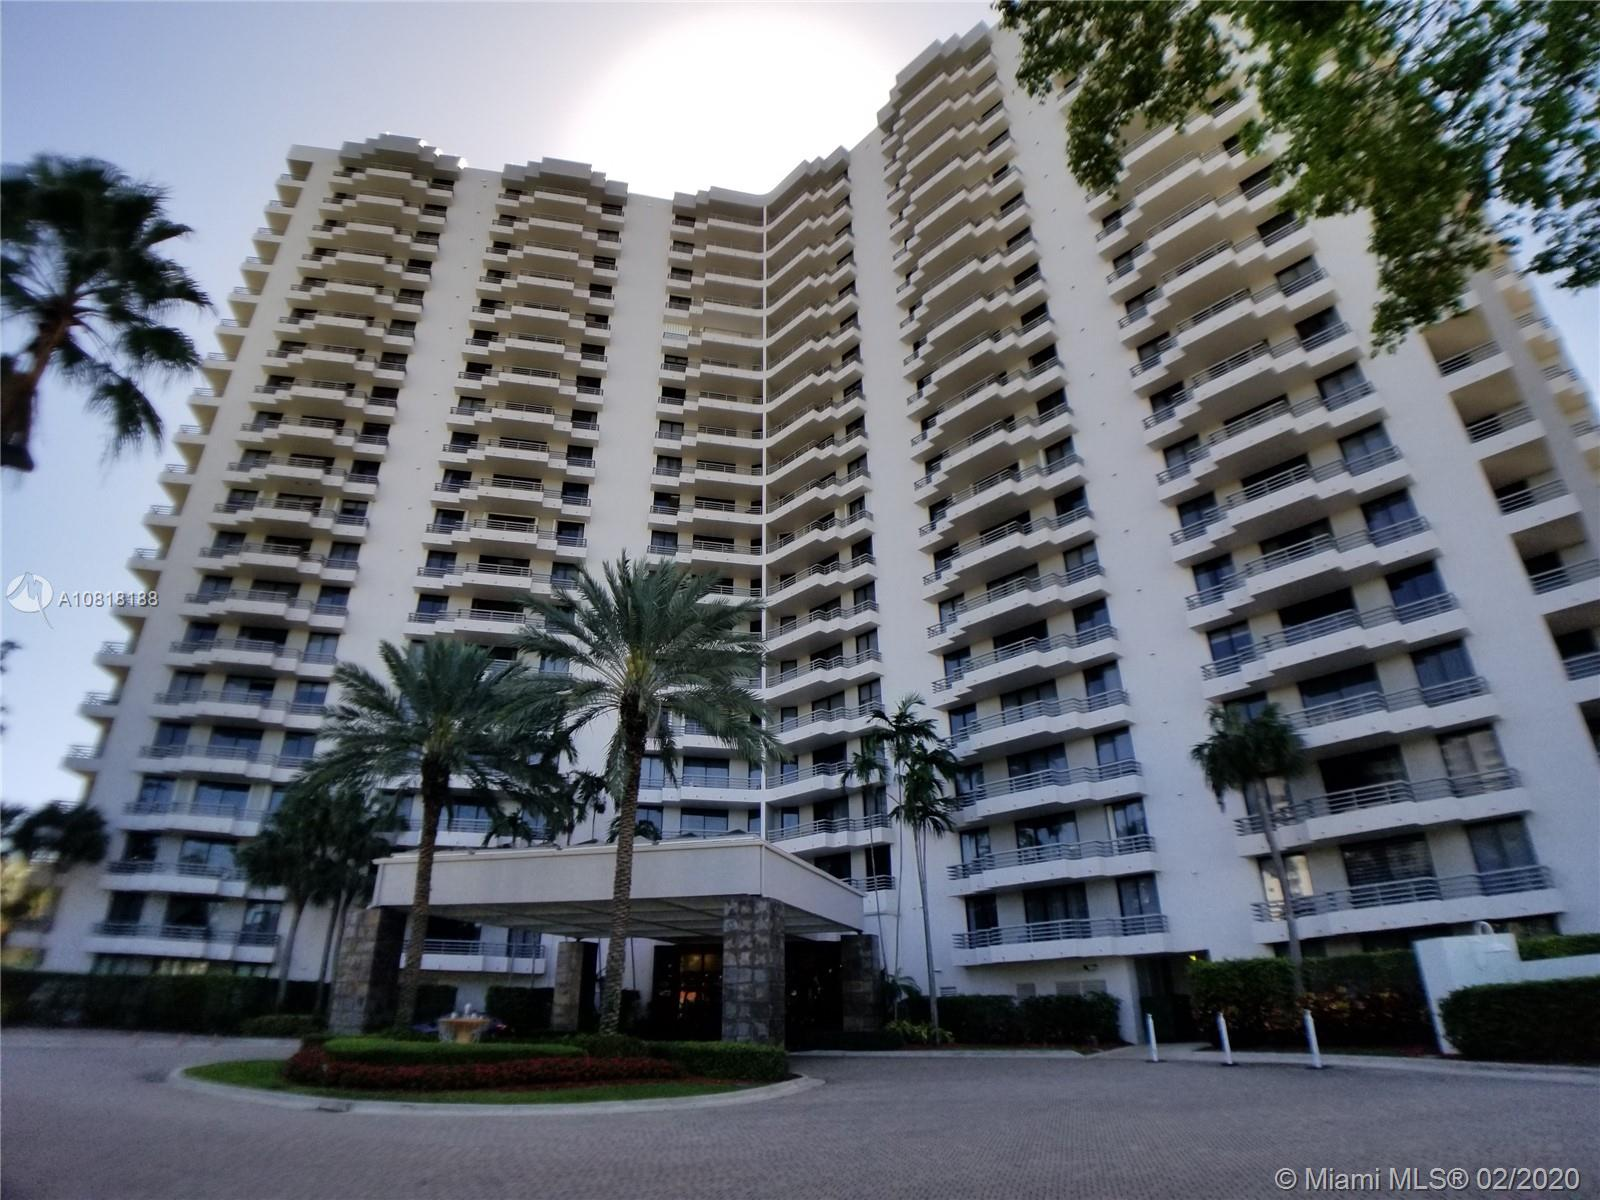 Parc Central West #611 - 3300 NE 191st St #611, Aventura, FL 33180